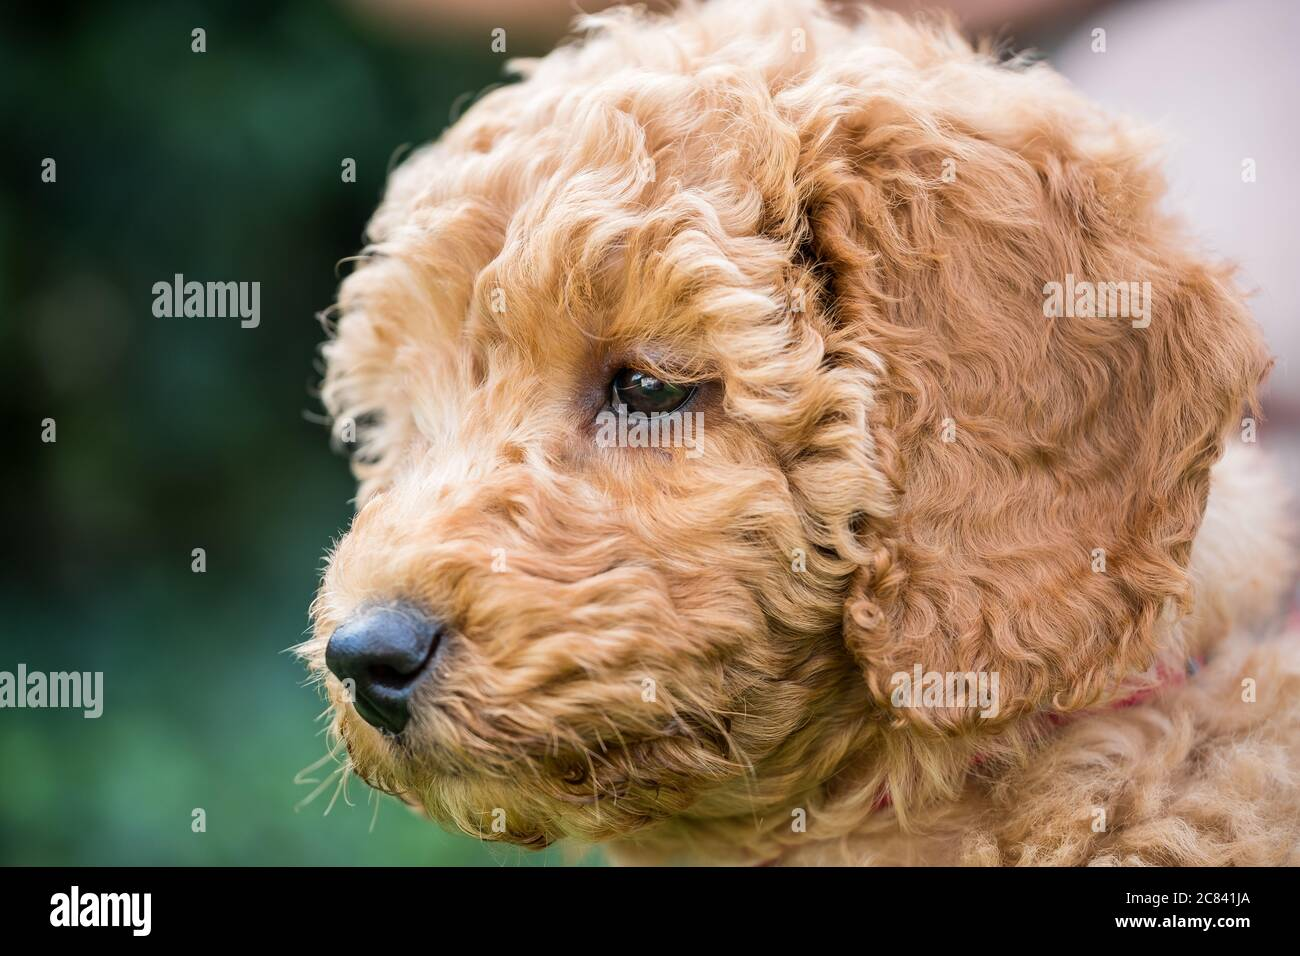 Teacup Poodle High Resolution Stock Photography And Images Alamy